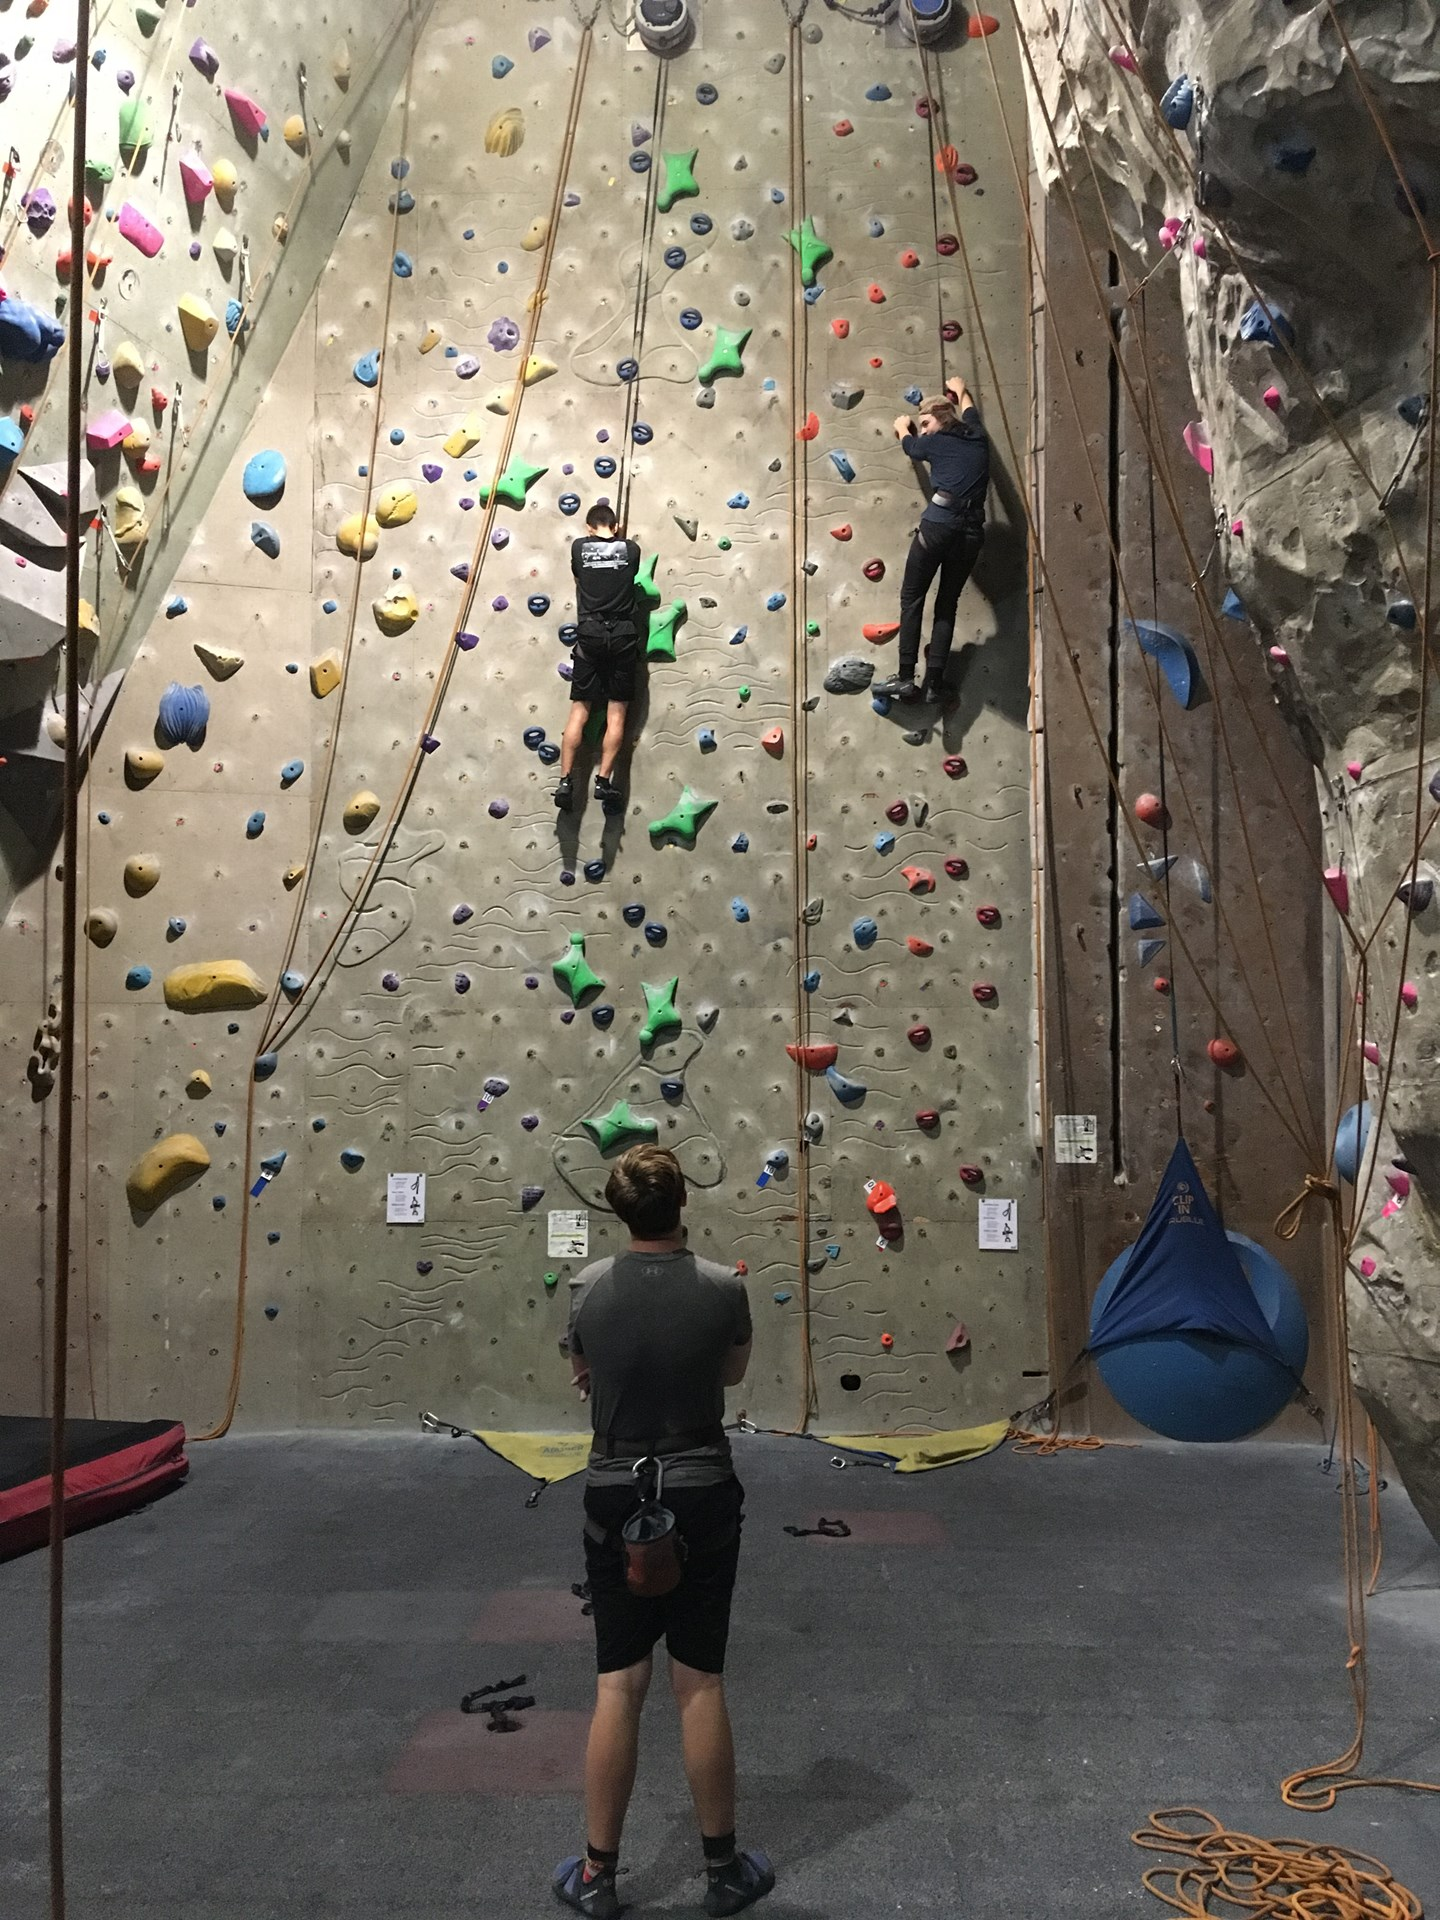 Outood Ed 2018 Indoor Rock Climbing 1.jpg